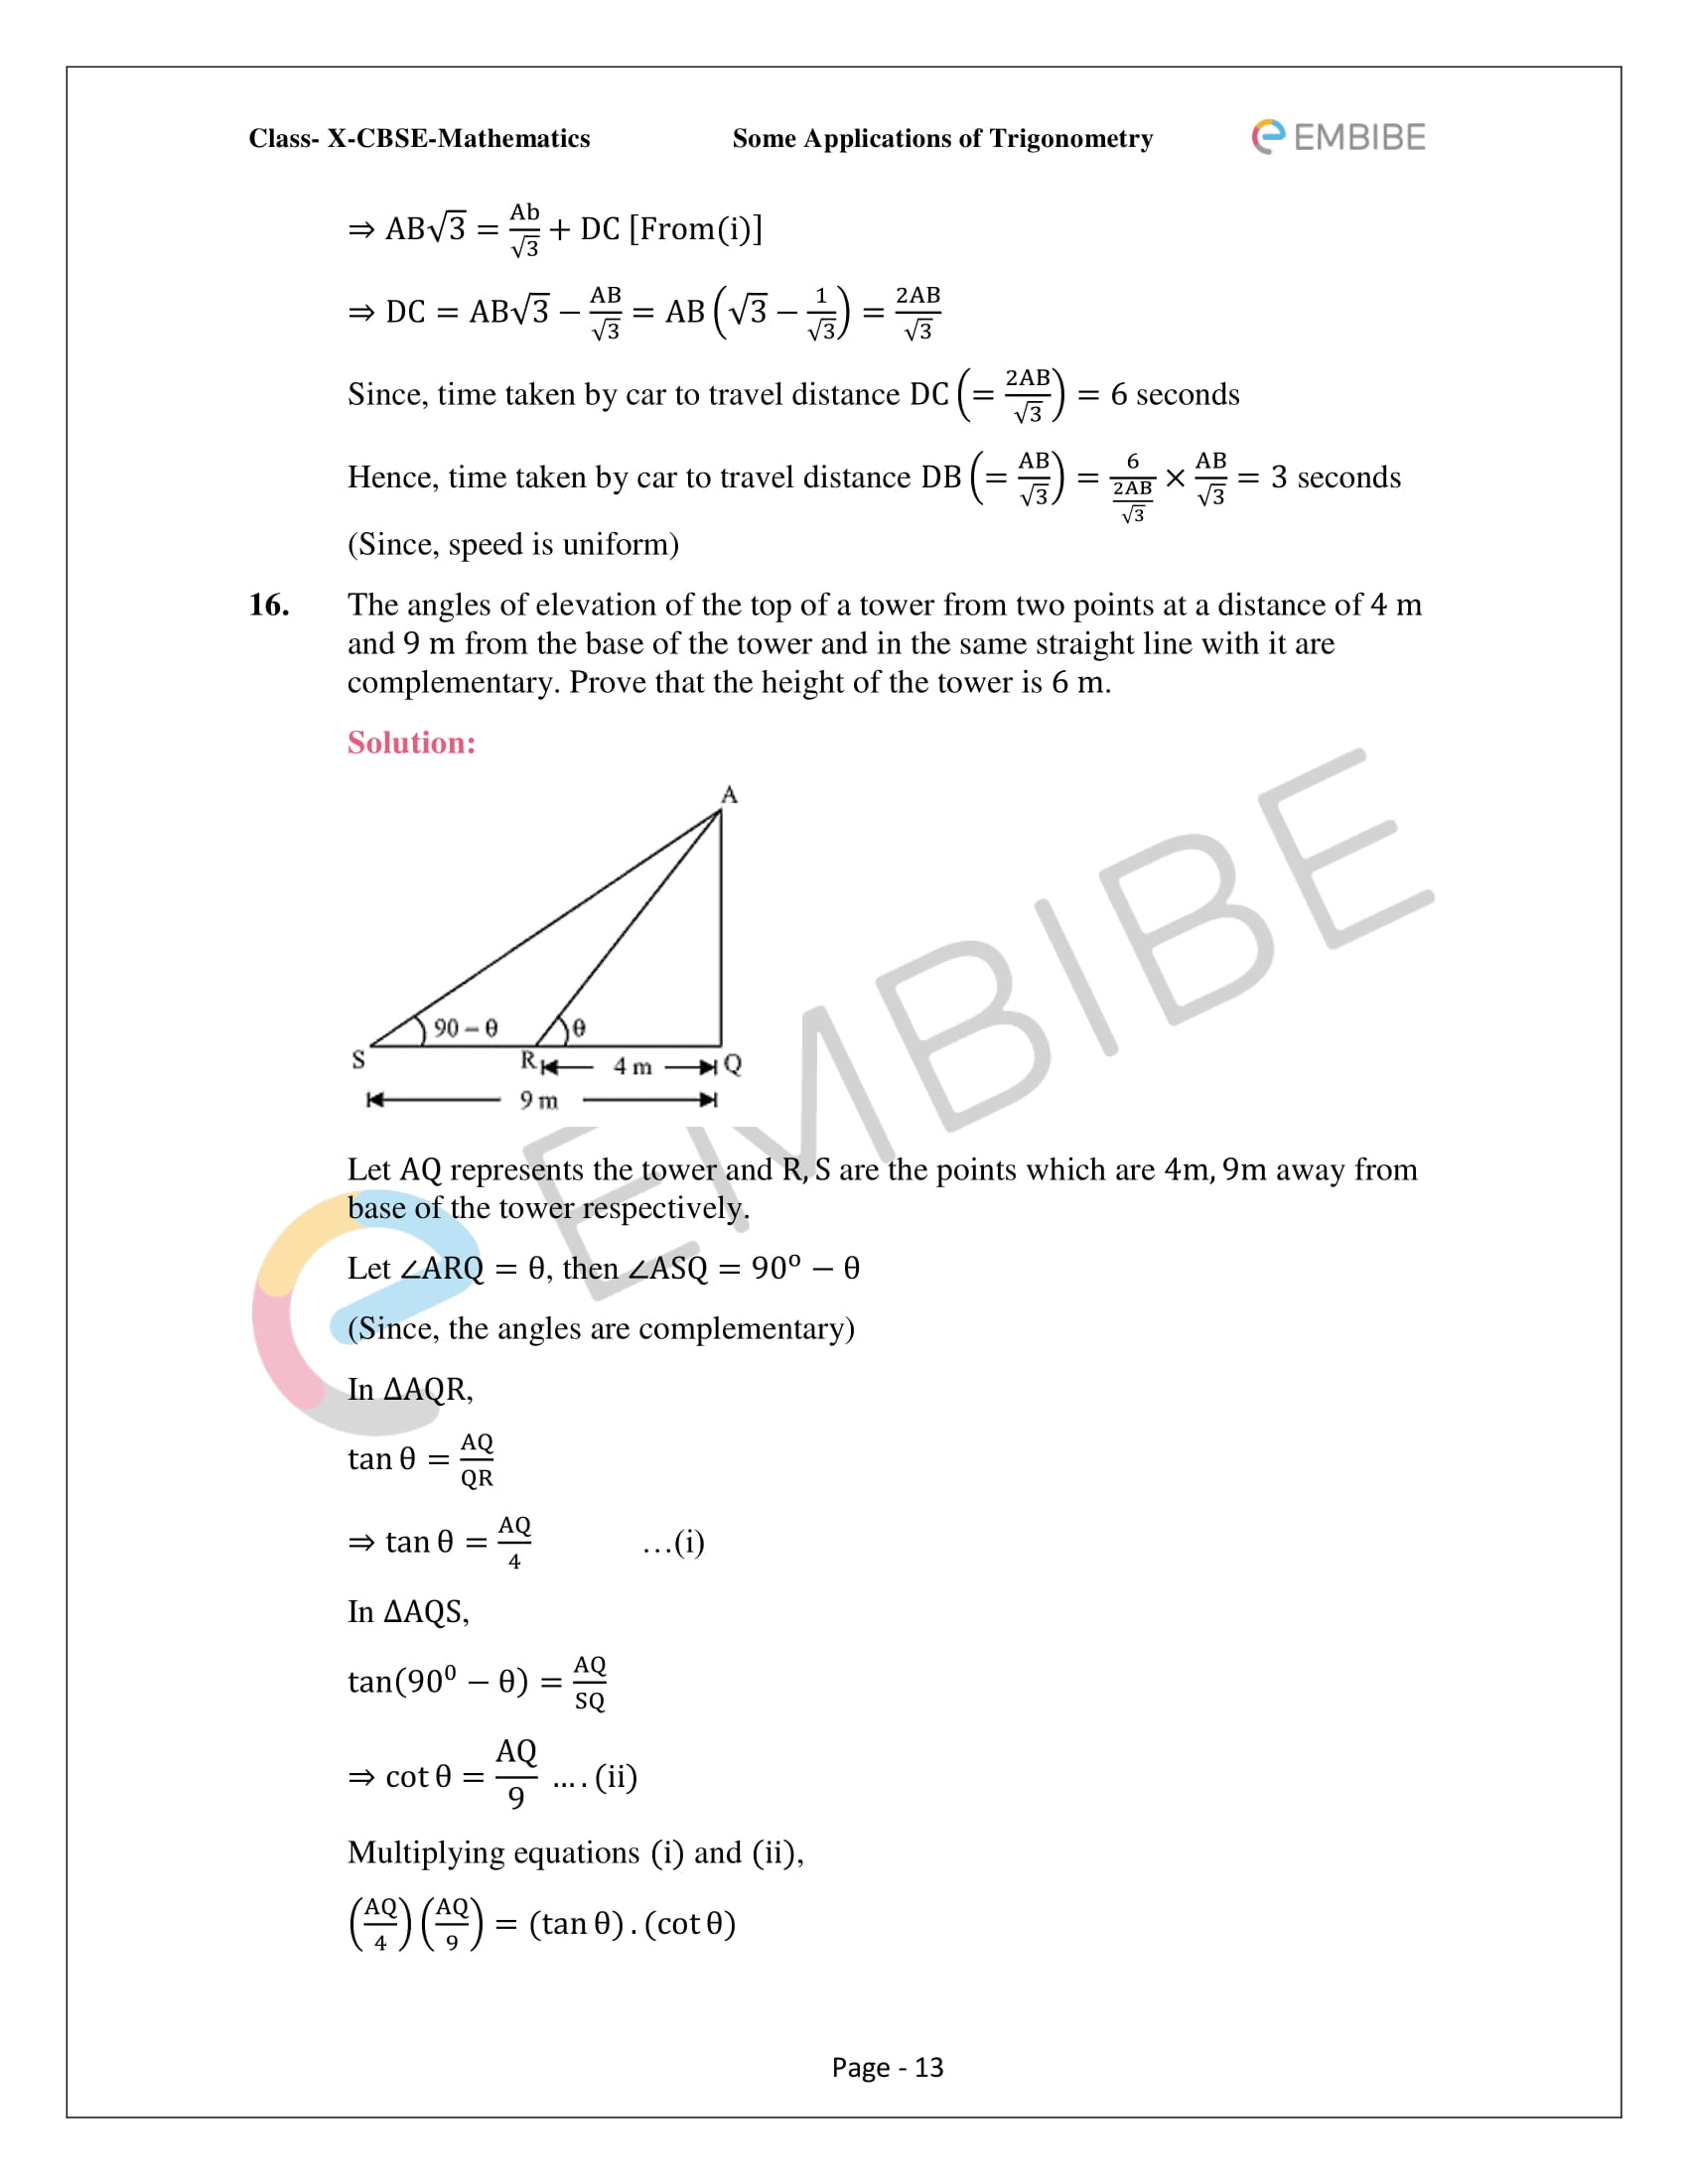 CBSE NCERT Solutions For Class 10 Maths Chapter 9 –Introduction To Trigonometry - 13